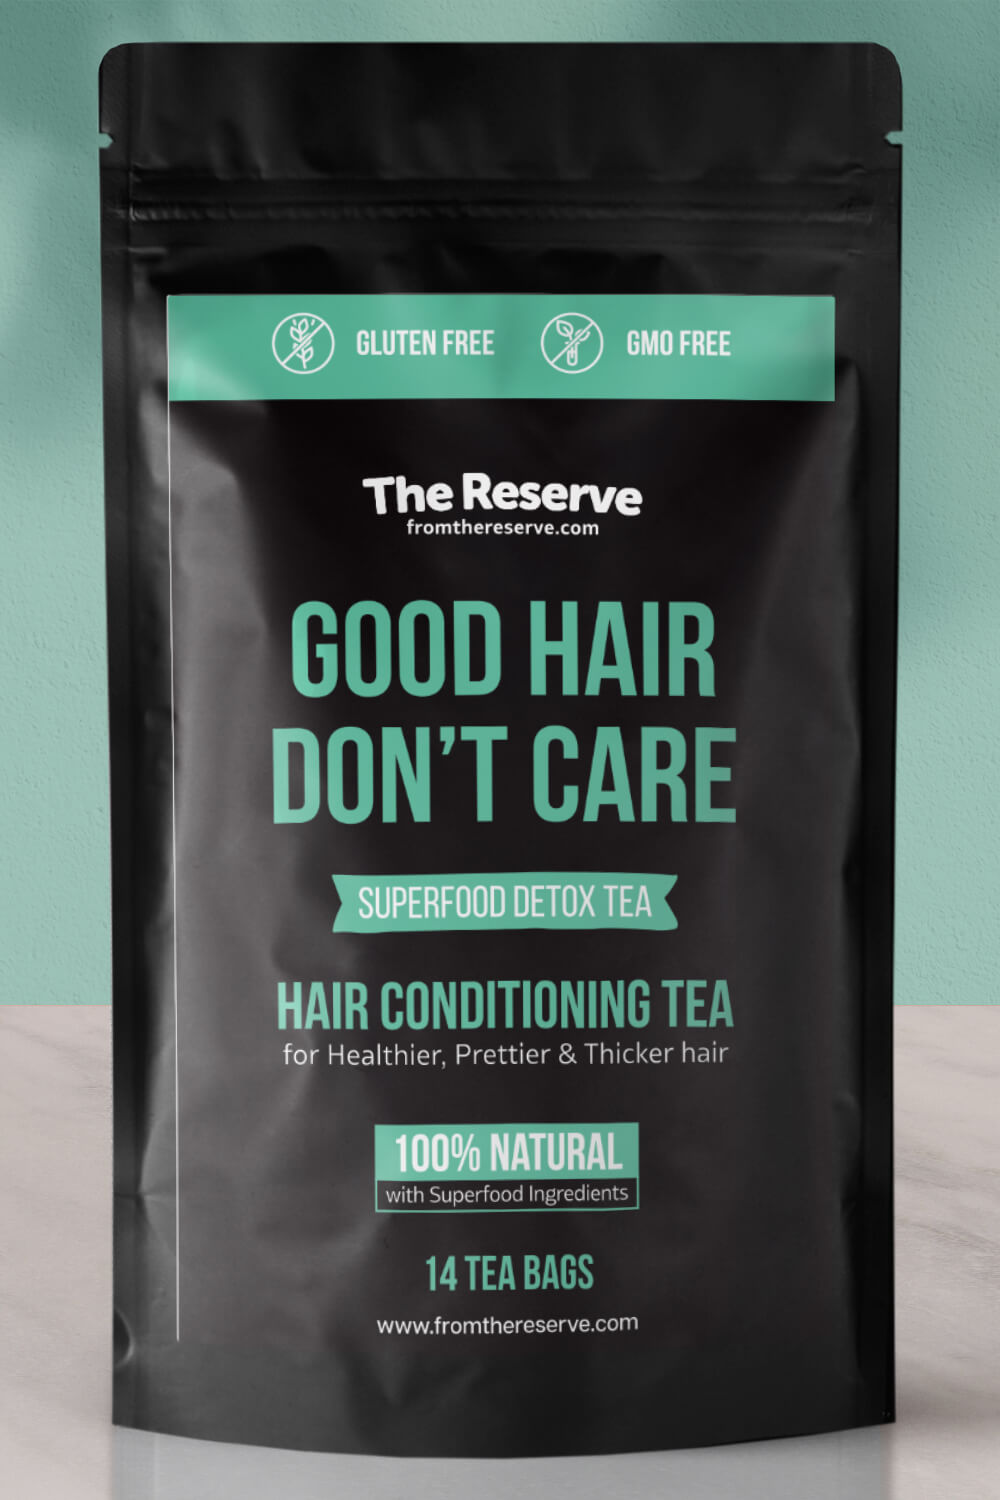 Hair Conditioning Tea